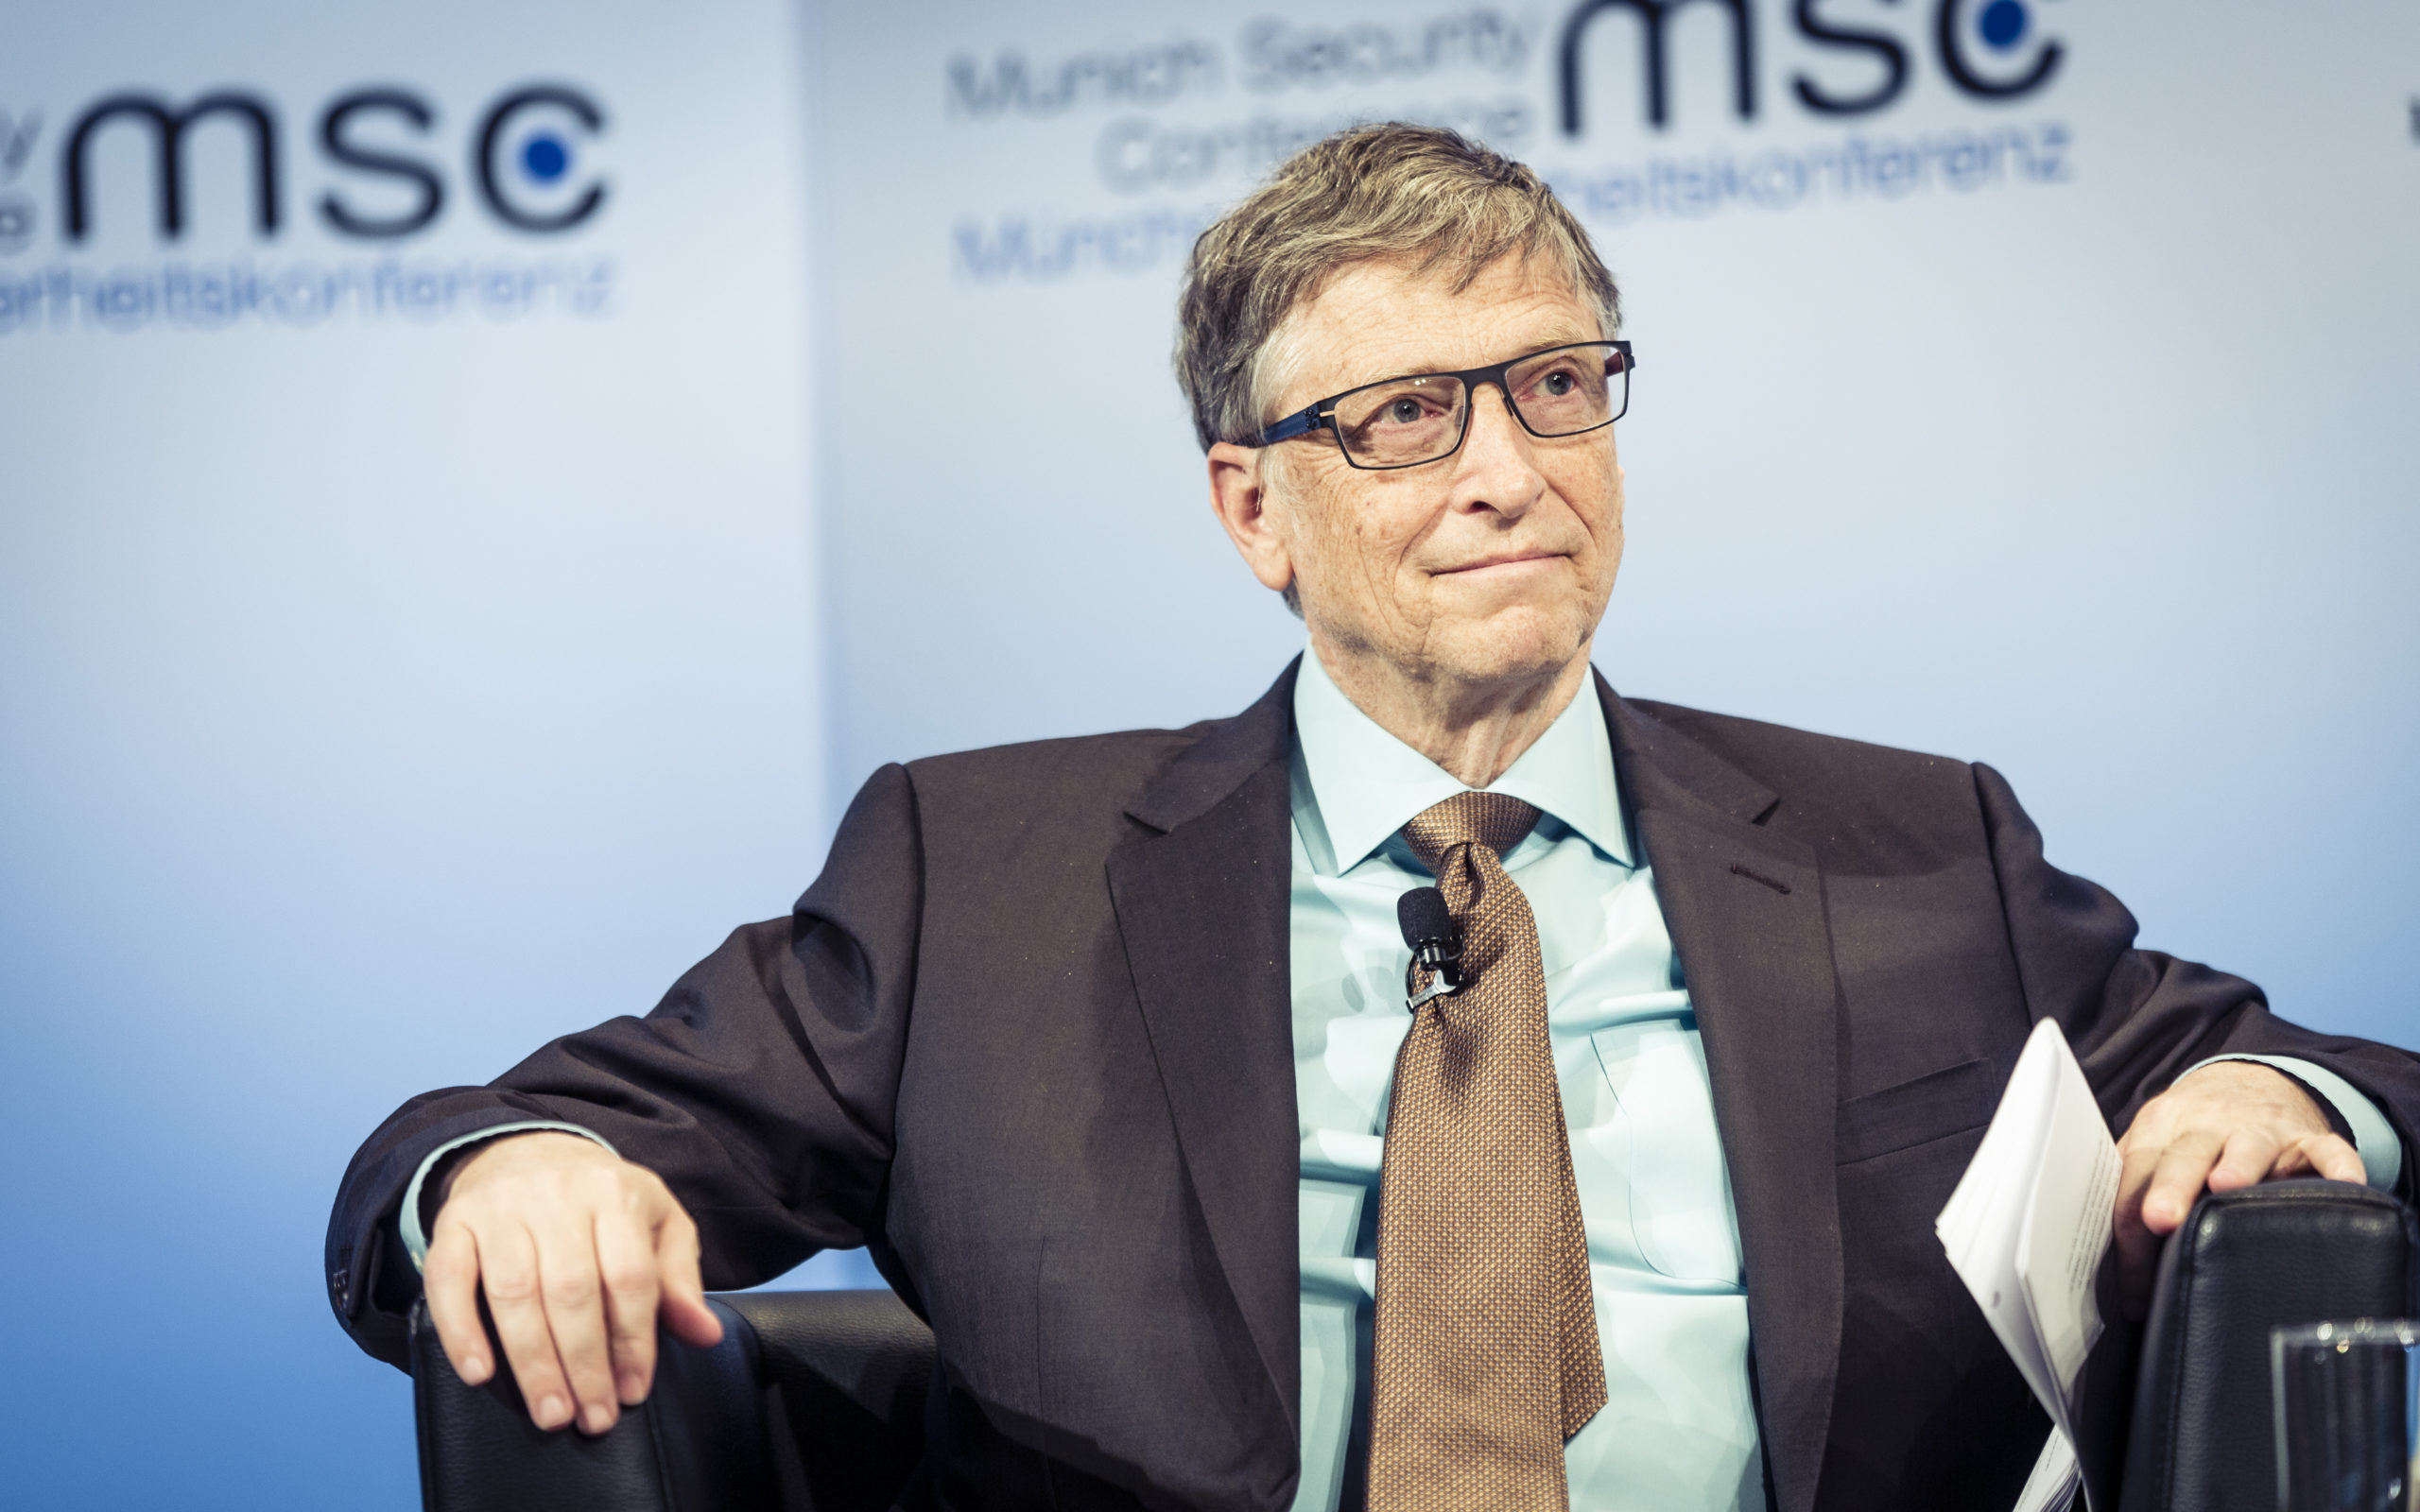 Americans Will Need At Least A Year To Recover From Coronavirus Fully, Bill Gates